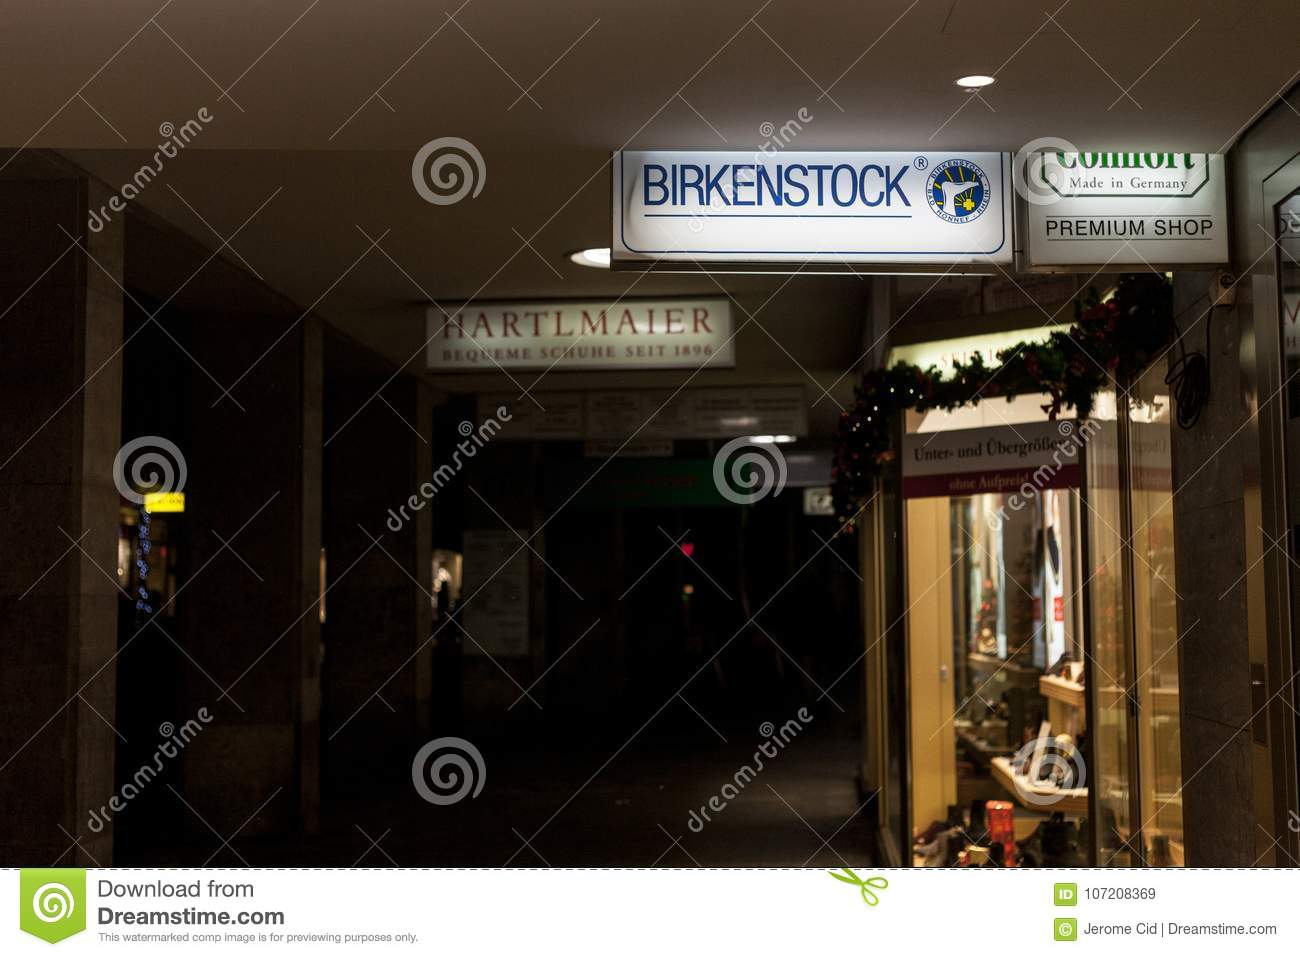 Download Birkenstock Logo On A Munich Reseller Store Taken During Snowy Night Is